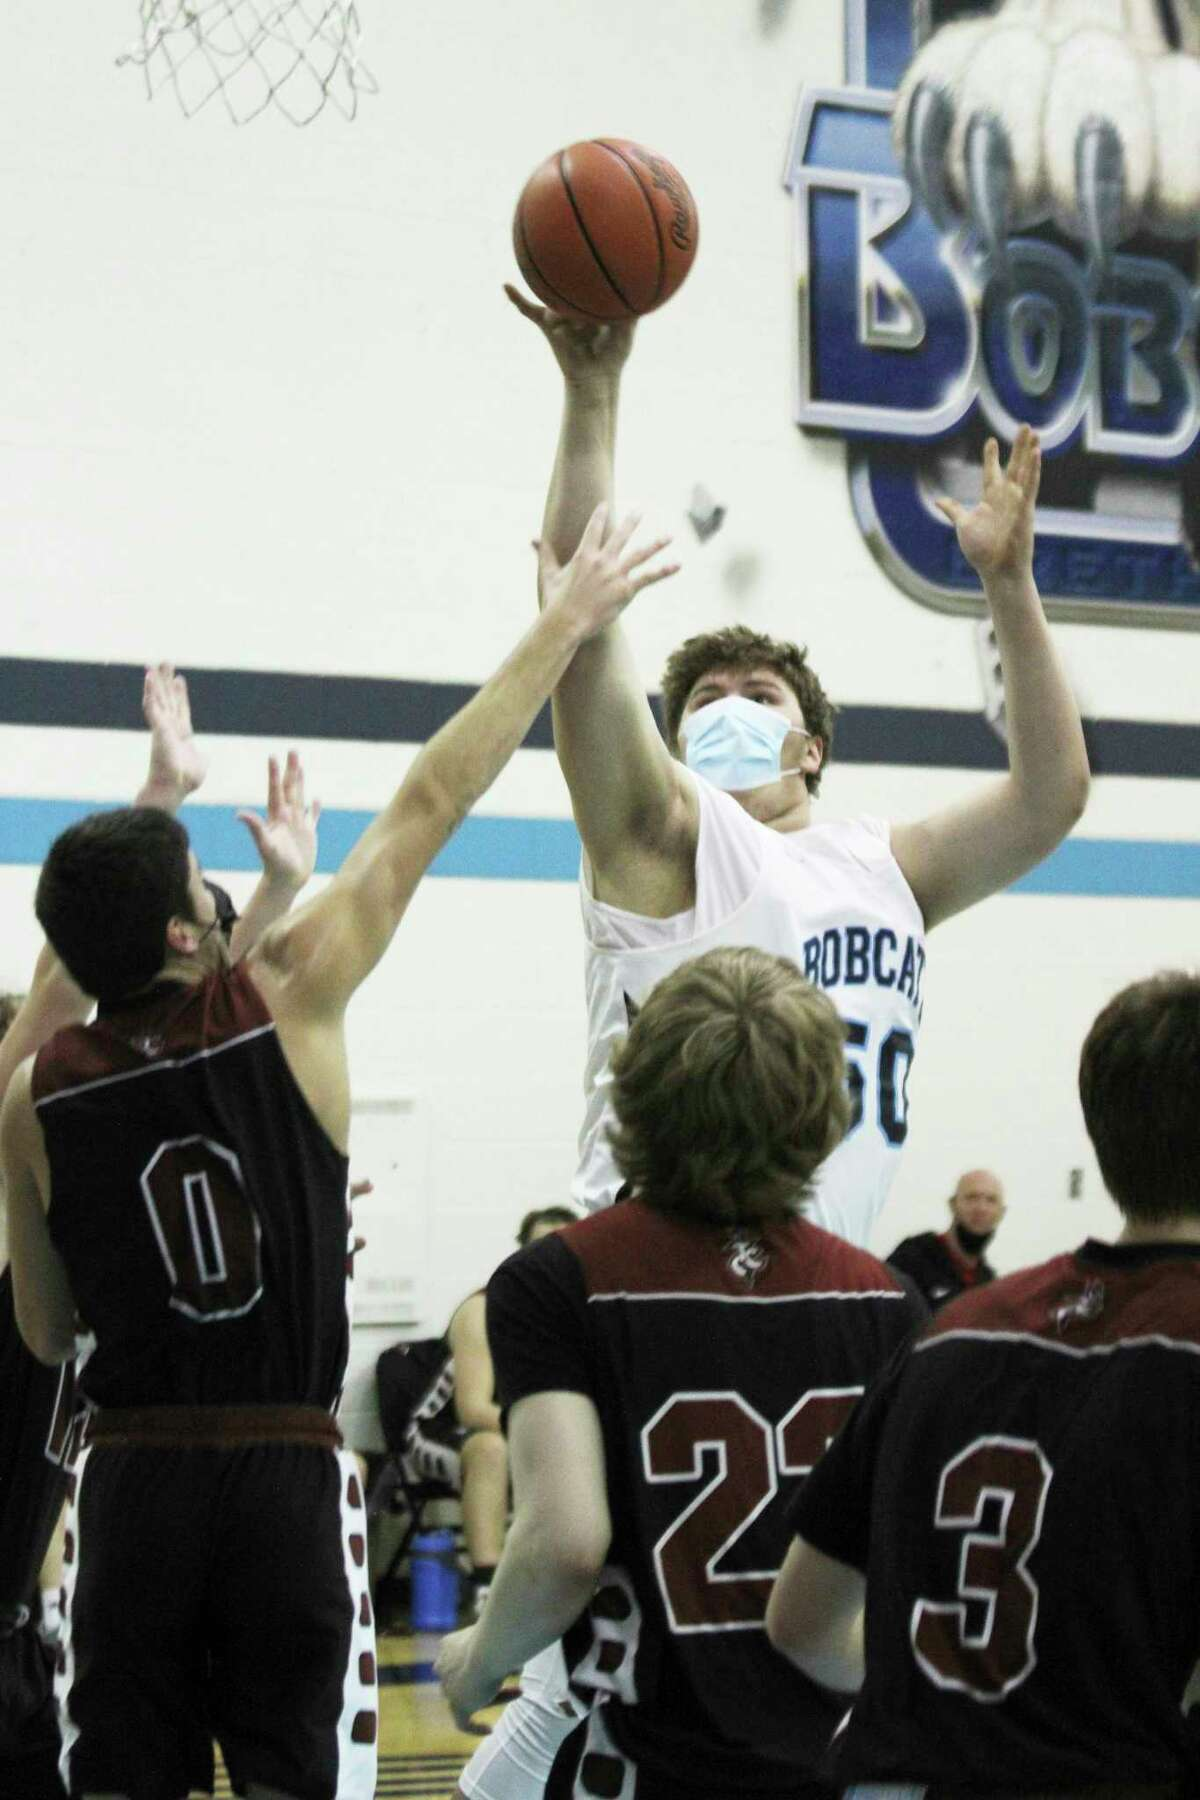 Brethren's Anthony Beccaria eyes the hoop during Monday's win over Traverse City Christian. (Dylan Savela/News Advocate)